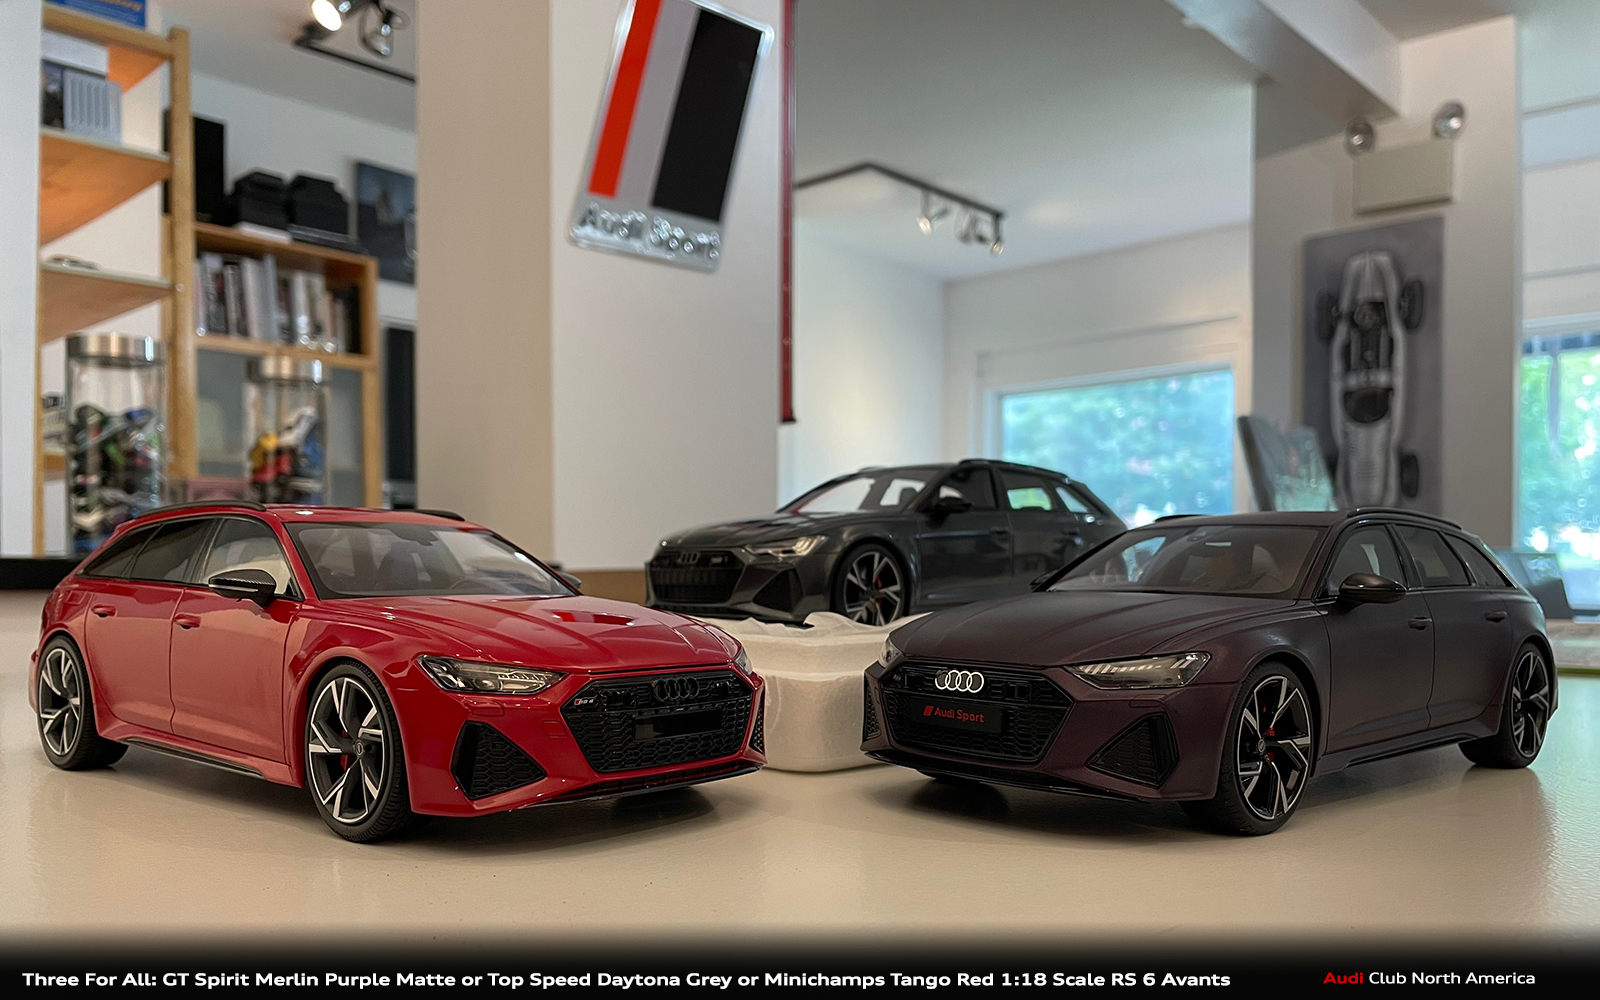 Three For All: GT Spirit Merlin Purple Matte or Top Speed Daytona Grey or Minichamps Tango Red 1:18 Scale RS 6 Avants